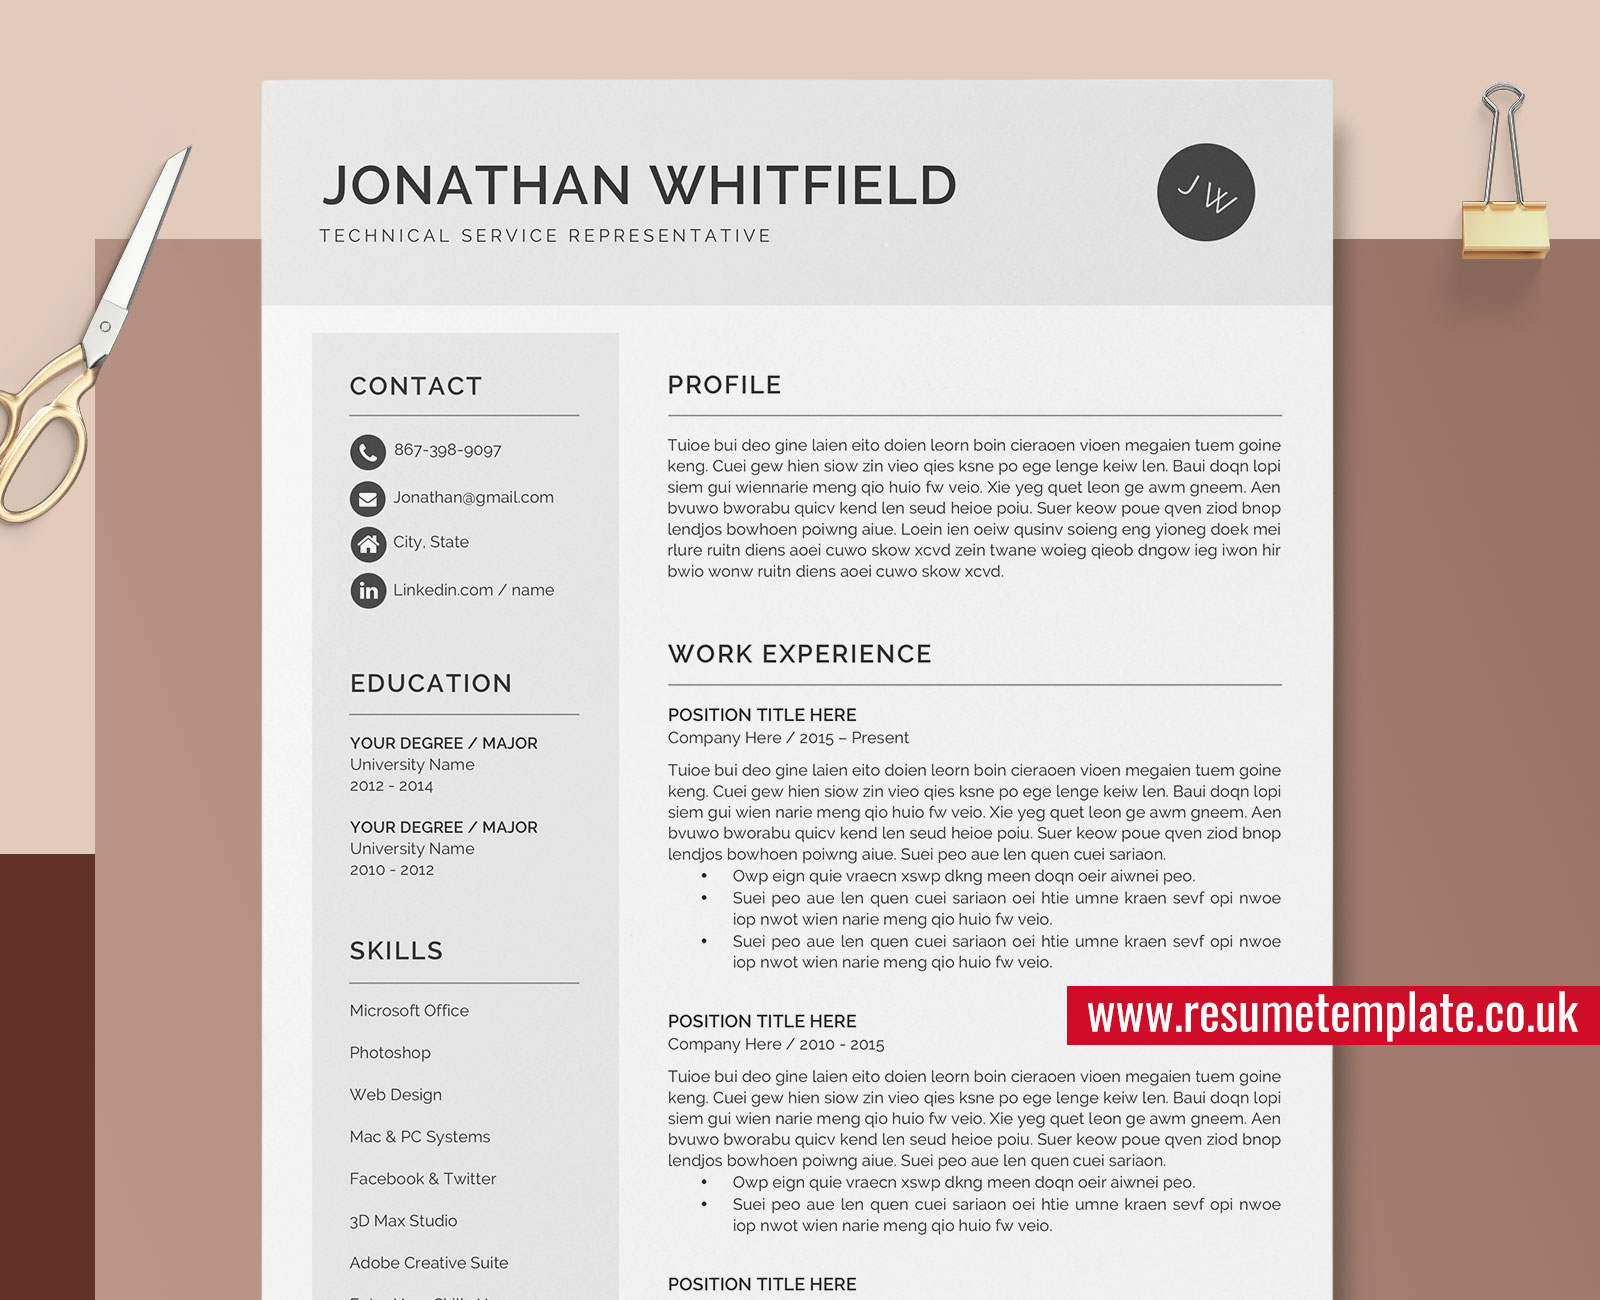 Cool Cv Templates from www.resumetemplate.co.uk